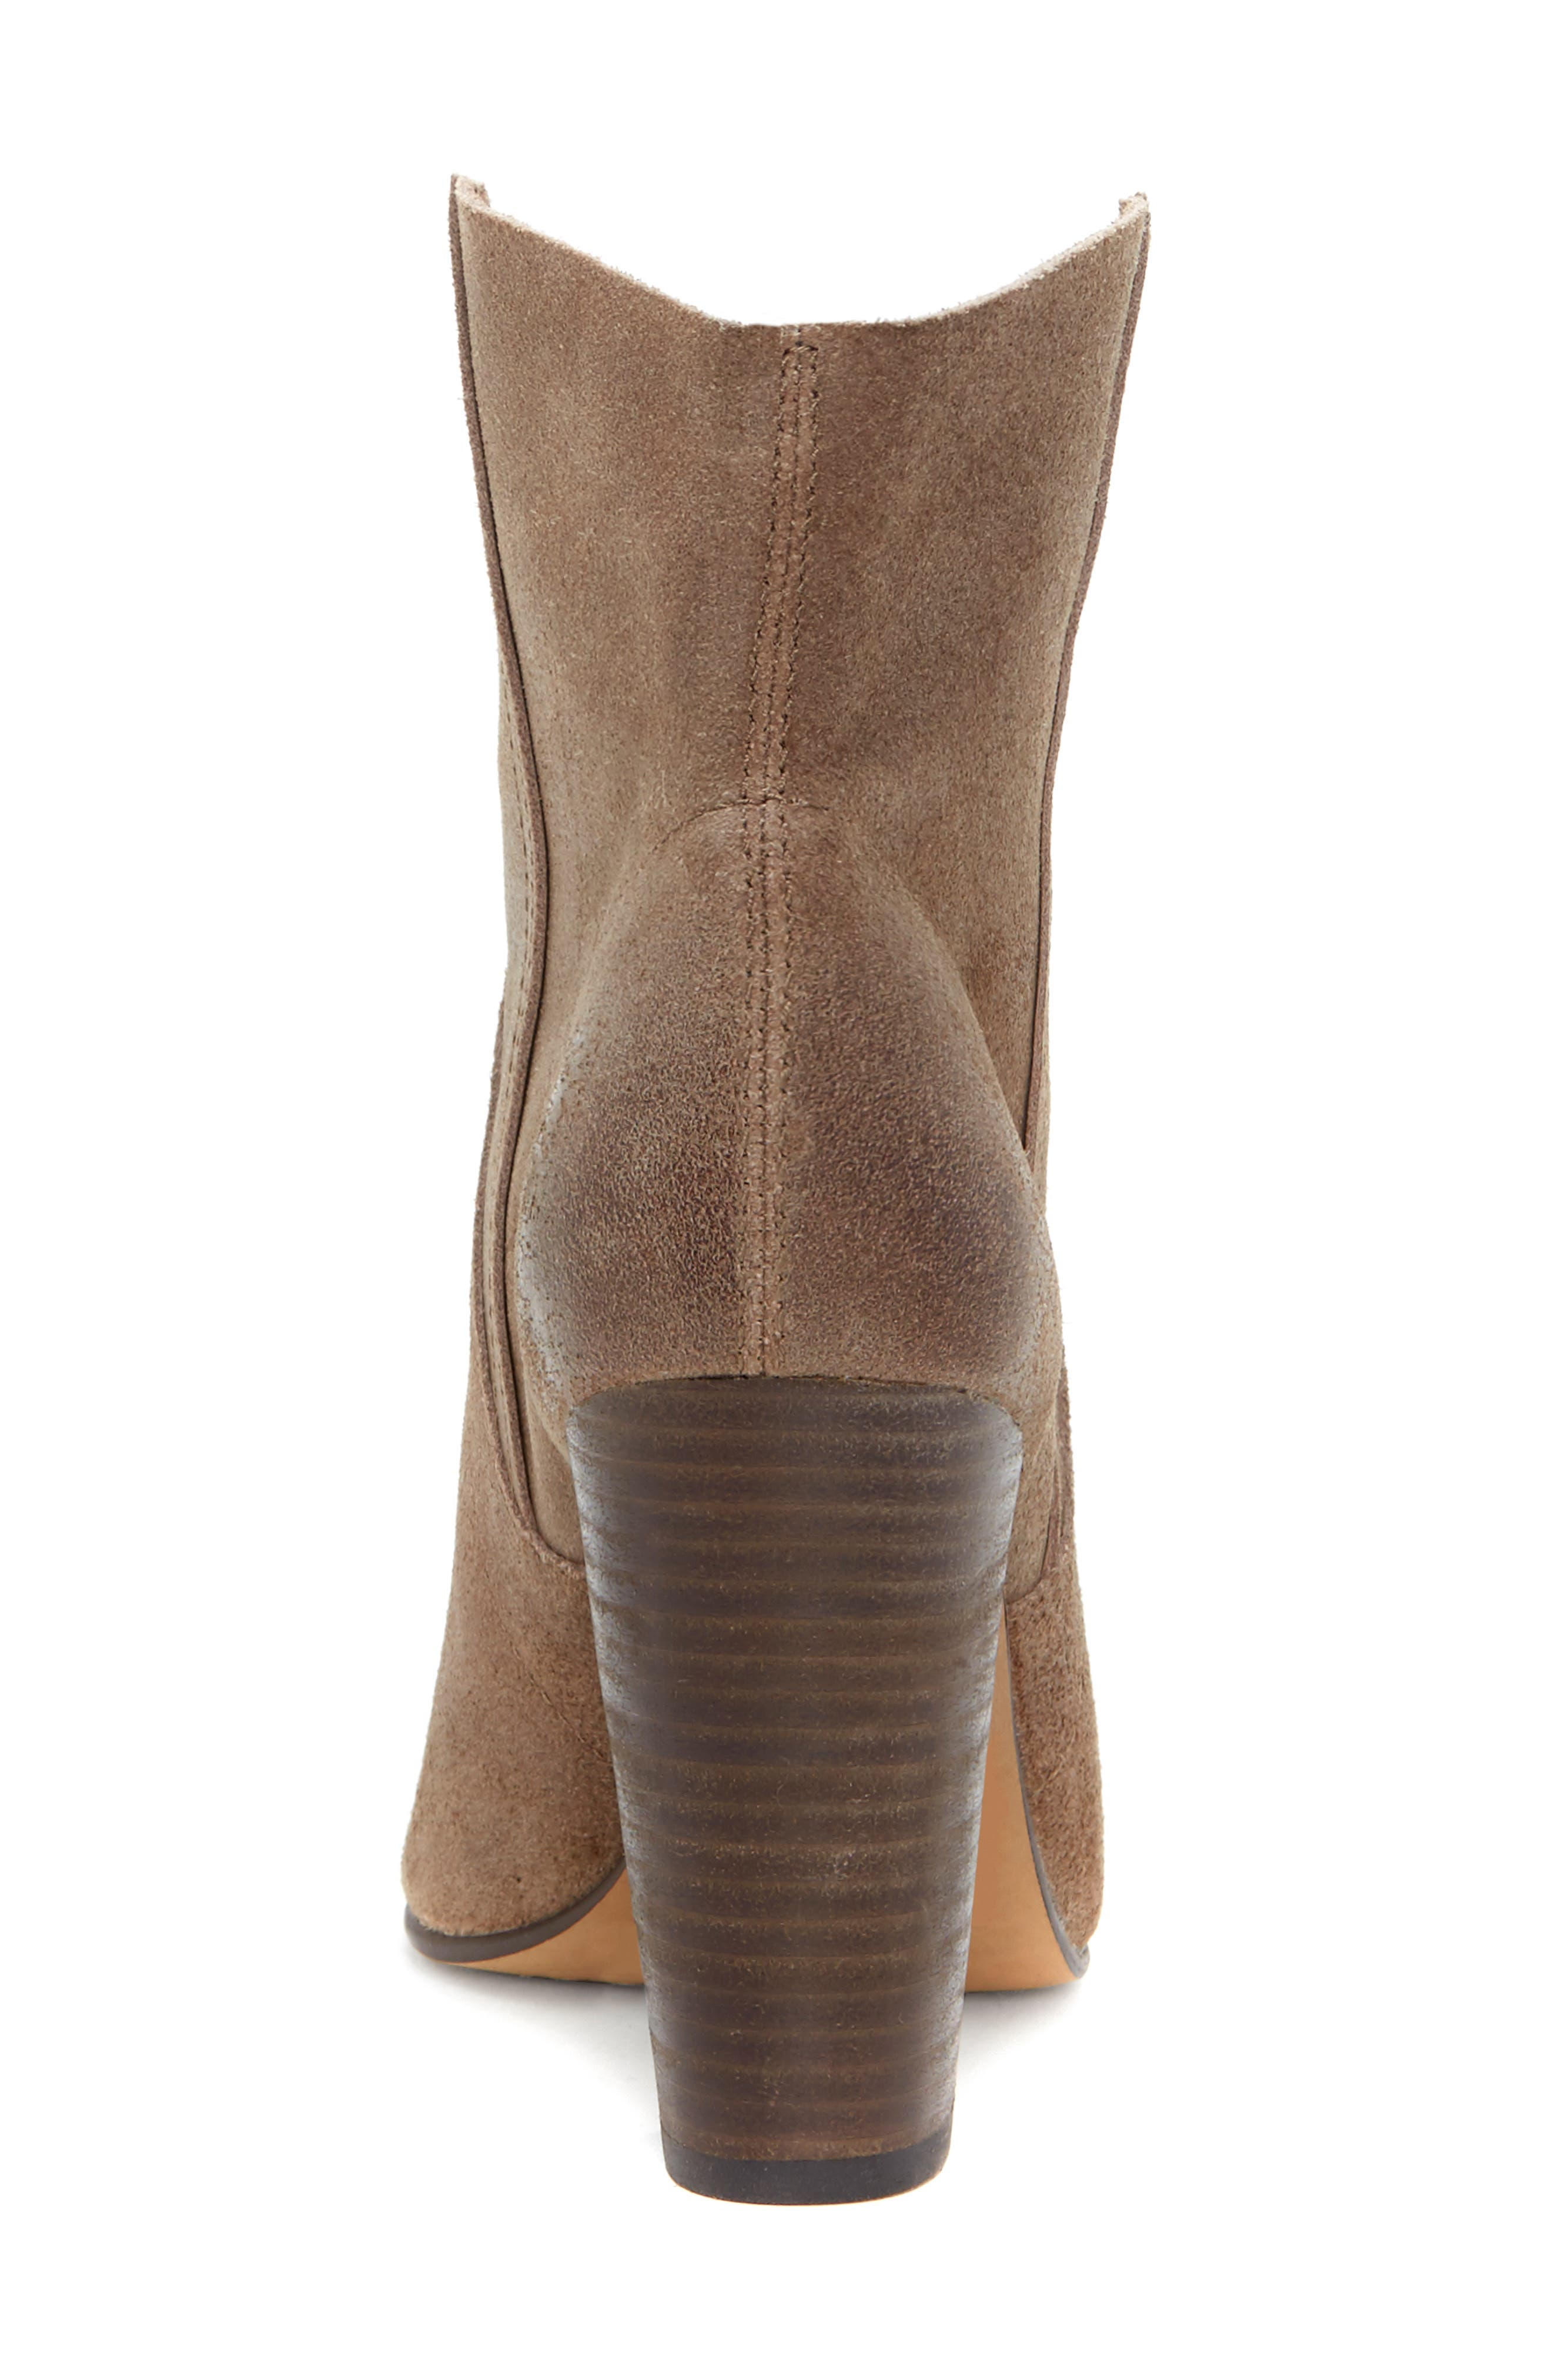 VINCE CAMUTO, Creestal Western Bootie, Alternate thumbnail 7, color, BEDROCK LEATHER